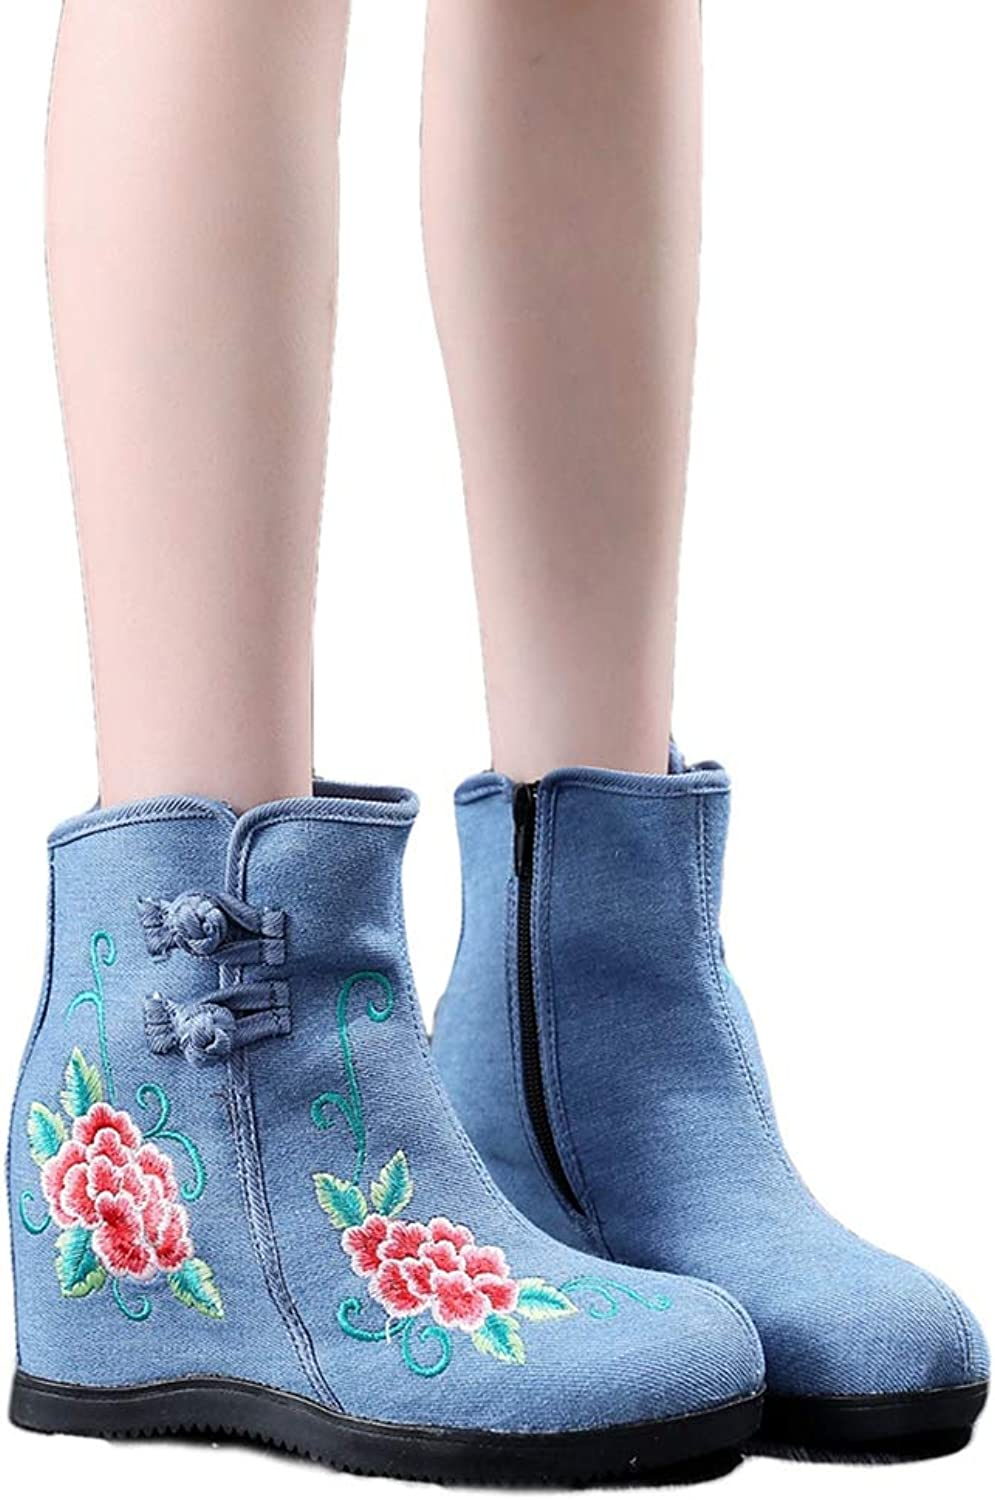 Kyle Walsh Pa Women Classic Boots Embroidered Ankle Booties Hidden Wedge Ladies Autumn Winter shoes